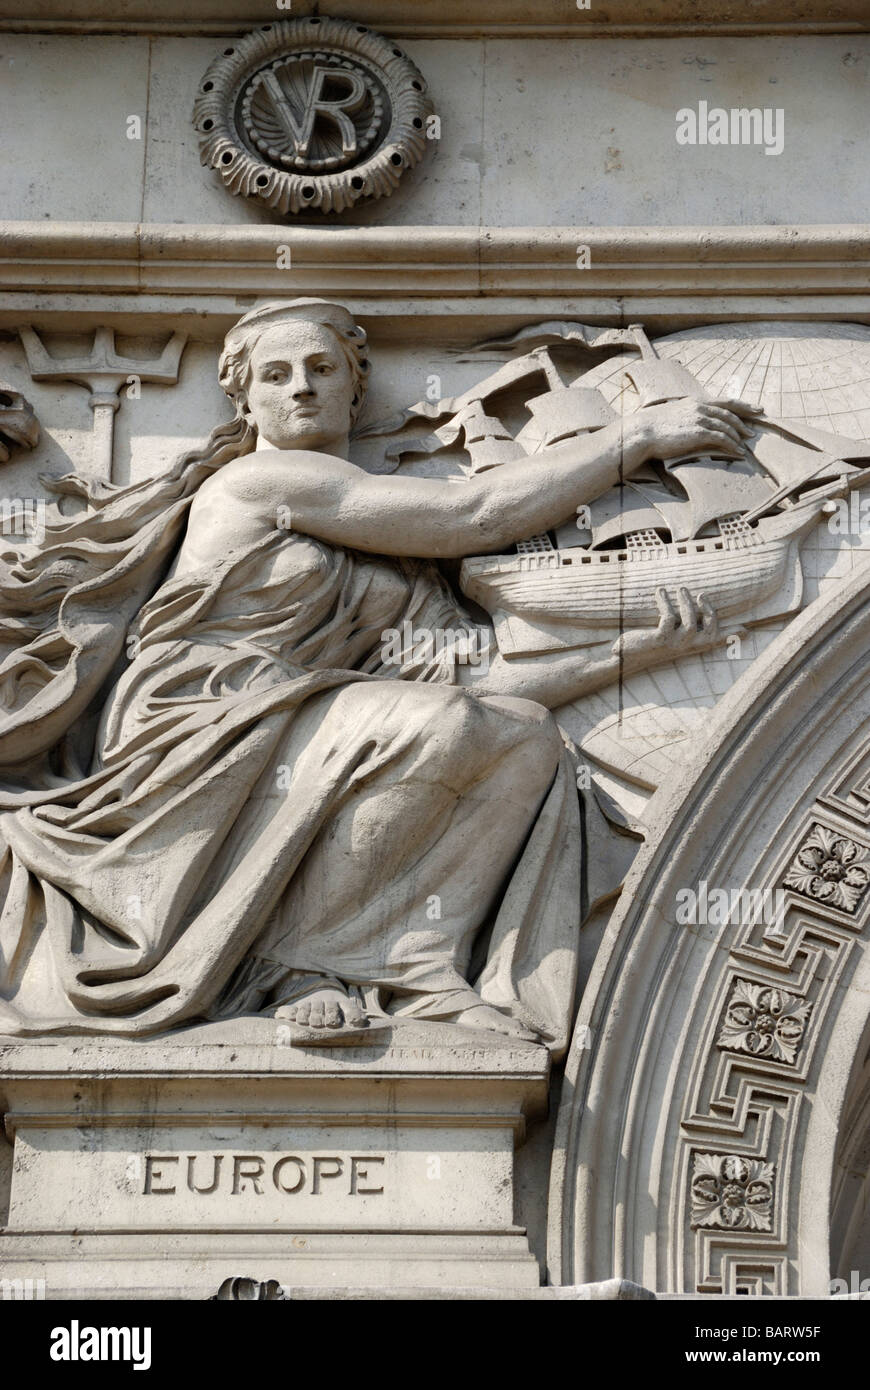 Sculpture representing the continent Europe on exterior of the old Foreign and Colonial Office in Whitehall London - Stock Image